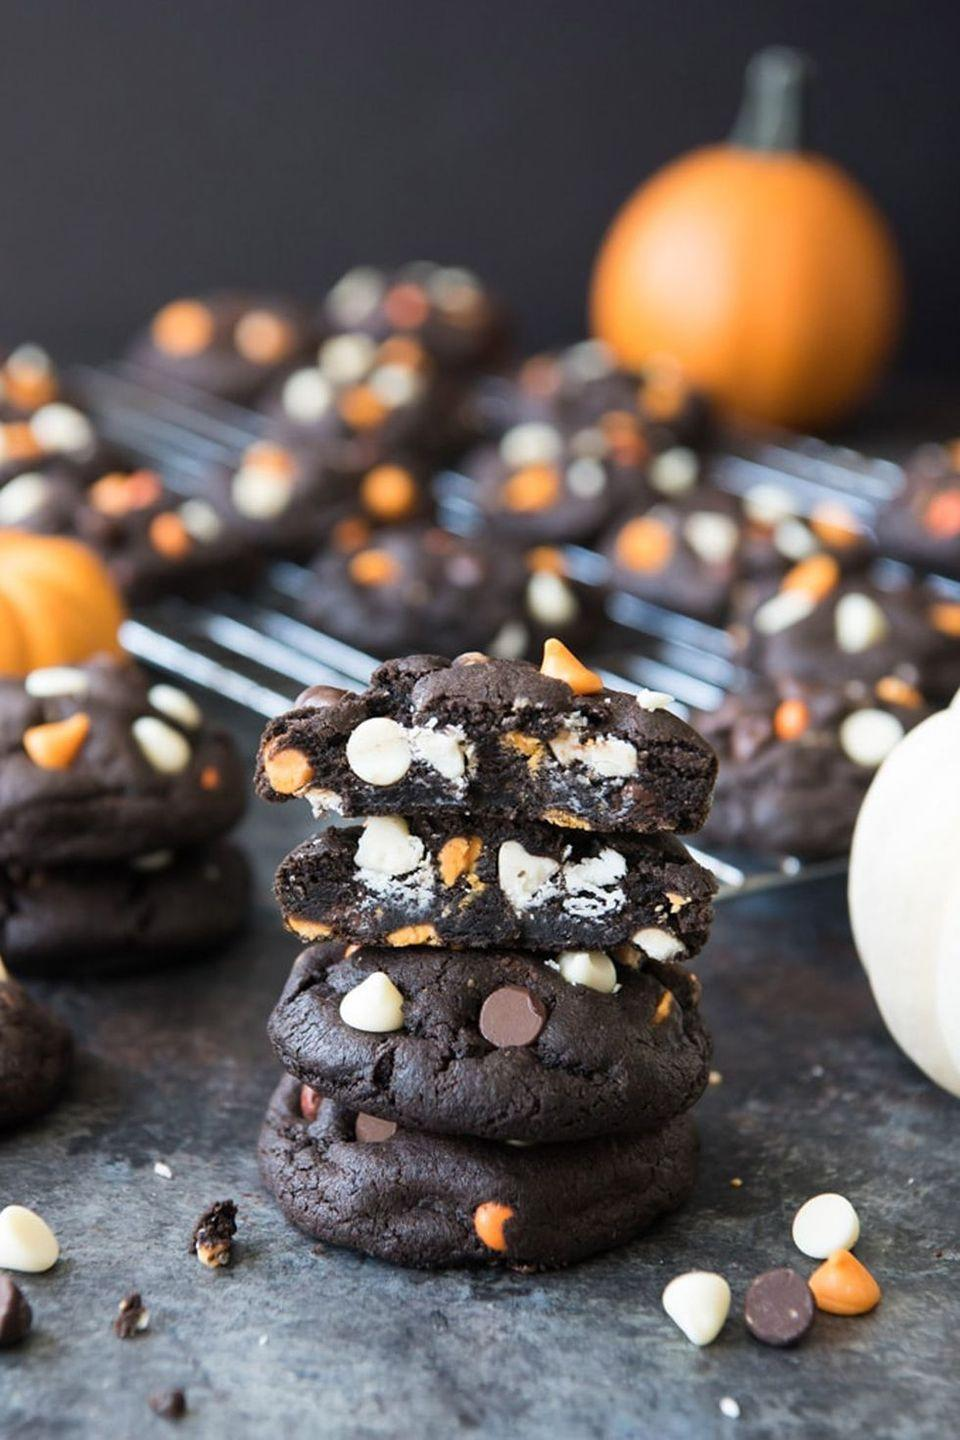 """<p>Loaded with white chocolate and peanut butter chips, these cookies are a seriously decadent way to celebrate the holiday.</p><p><strong>Get the recipe at <a href=""""https://houseofnasheats.com/dark-chocolate-halloween-chip-cookies/"""" rel=""""nofollow noopener"""" target=""""_blank"""" data-ylk=""""slk:House of Nash Eats"""" class=""""link rapid-noclick-resp"""">House of Nash Eats</a>.</strong></p><p><strong><strong><a class=""""link rapid-noclick-resp"""" href=""""https://go.redirectingat.com?id=74968X1596630&url=https%3A%2F%2Fwww.walmart.com%2Fip%2FThe-Pioneer-Woman-Classic-Charm-16-Inch-Rectangular-Platter-Blue%2F975428930&sref=https%3A%2F%2Fwww.thepioneerwoman.com%2Ffood-cooking%2Fmeals-menus%2Fg32110899%2Fbest-halloween-desserts%2F"""" rel=""""nofollow noopener"""" target=""""_blank"""" data-ylk=""""slk:SHOP SERVING PLATTERS"""">SHOP SERVING PLATTERS</a></strong><br></strong></p>"""